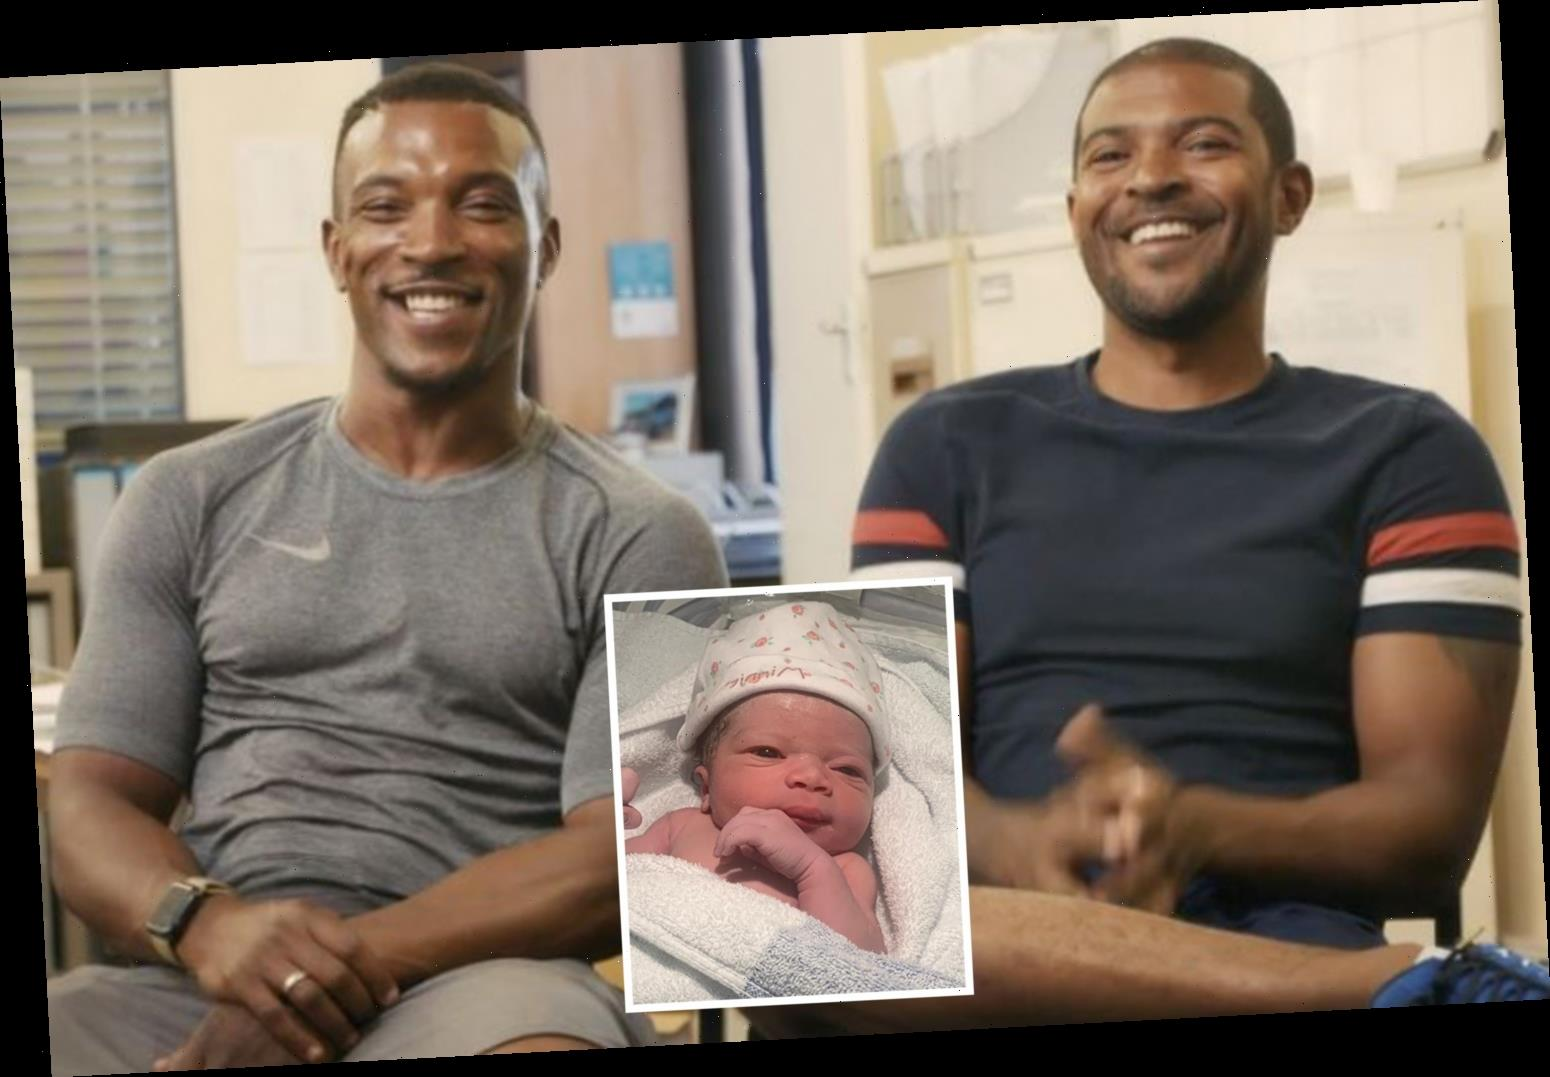 Bulletproof's Noel Clarke takes swipe at co-star Ashley Walters for becoming a grandad aged 38